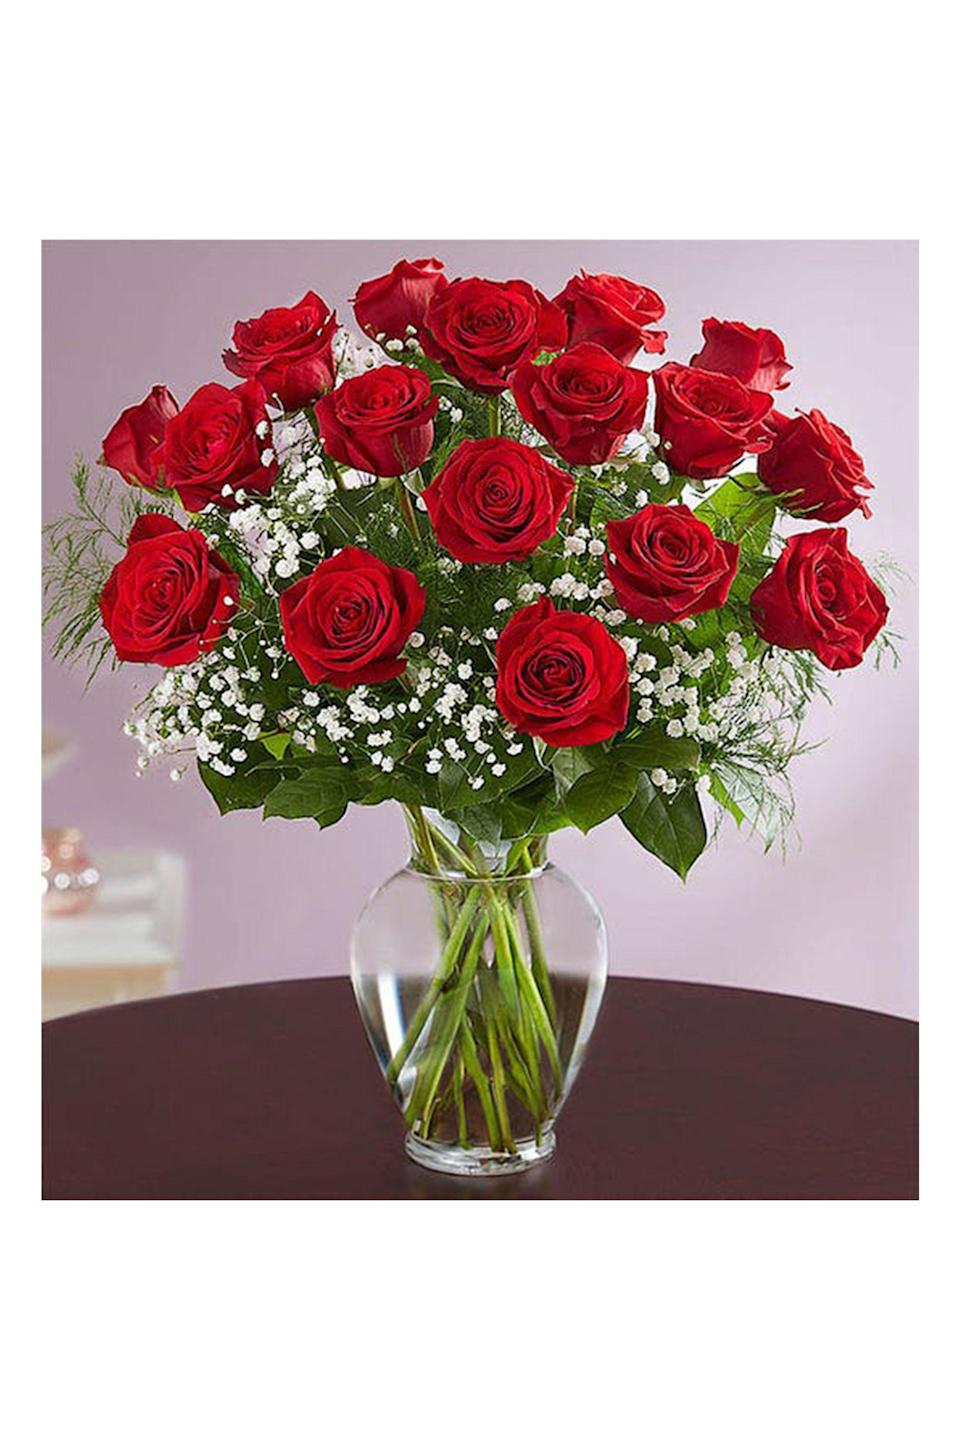 """<p><strong>1-800-Flowers</strong></p><p>1800flowers.com</p><p><strong>$59.99</strong></p><p><a href=""""https://go.redirectingat.com?id=74968X1596630&url=https%3A%2F%2Fwww.1800flowers.com%2Fflorist-delivered-long-stem-red-roses-161776&sref=https%3A%2F%2Fwww.redbookmag.com%2Flife%2Fg35152525%2Fbest-flower-delivery-service%2F"""" rel=""""nofollow noopener"""" target=""""_blank"""" data-ylk=""""slk:Shop Now"""" class=""""link rapid-noclick-resp"""">Shop Now</a></p><p>For more than 40 years, <a href=""""https://go.redirectingat.com?id=74968X1596630&url=https%3A%2F%2Fwww.1800flowers.com%2F&sref=https%3A%2F%2Fwww.redbookmag.com%2Flife%2Fg35152525%2Fbest-flower-delivery-service%2F"""" rel=""""nofollow noopener"""" target=""""_blank"""" data-ylk=""""slk:1-800-Flowers.com"""" class=""""link rapid-noclick-resp"""">1-800-Flowers.com</a> has been spreading joy with their mom-approved arrangements. Not only are they leaders in flower delivery, they also offer other gifts including fruits, gourmet foods, and gift baskets, making it a one stop shop for all your needs. Stay tuned for upcoming fashion collaborations to come.</p>"""